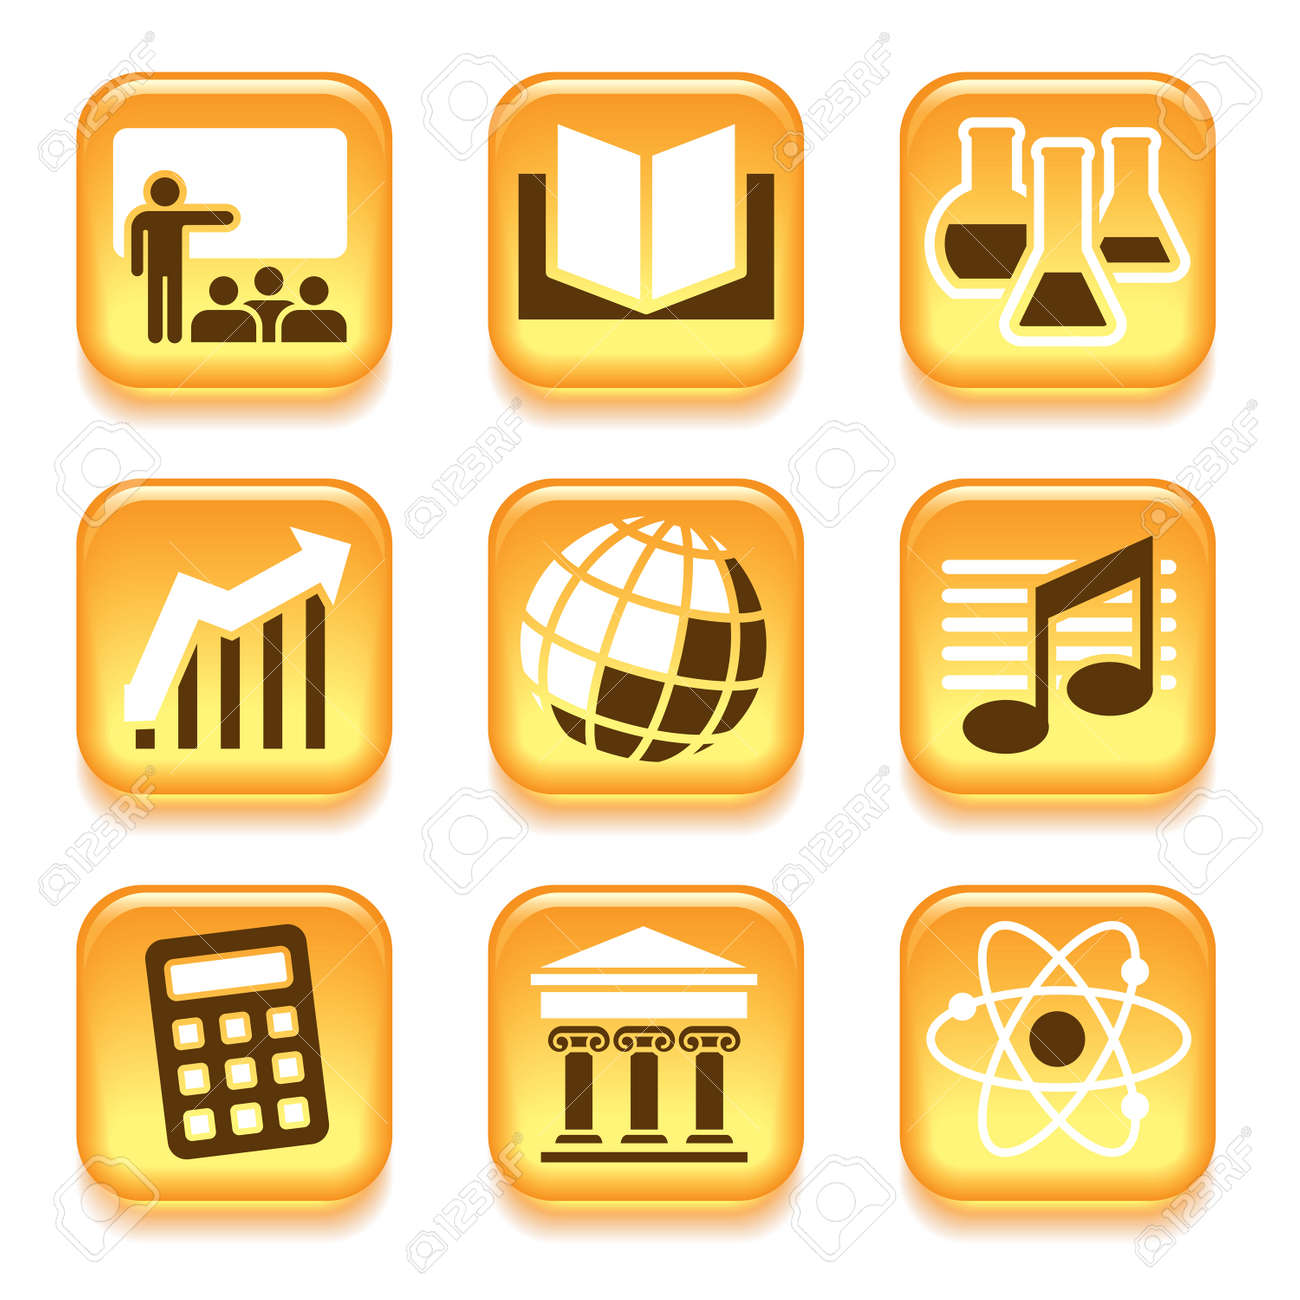 school subjects icons set over white background royalty free